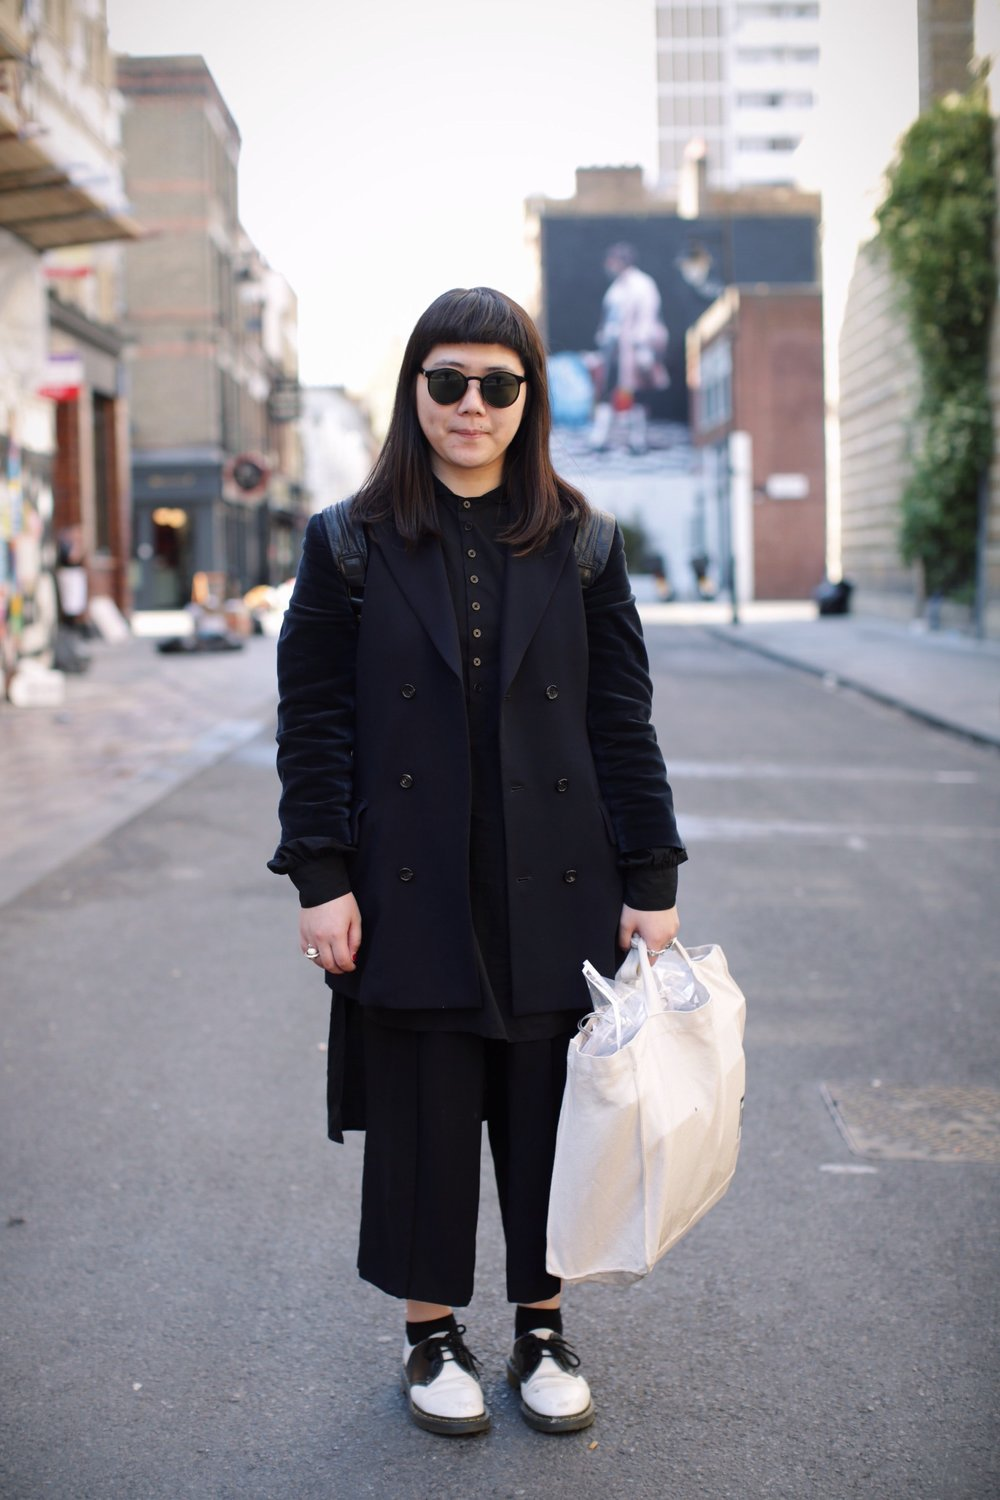 Fan is a menswear designer and currently studying at London College of Fashion. Her favourite menswear of the moment is Comme DeGarçon.